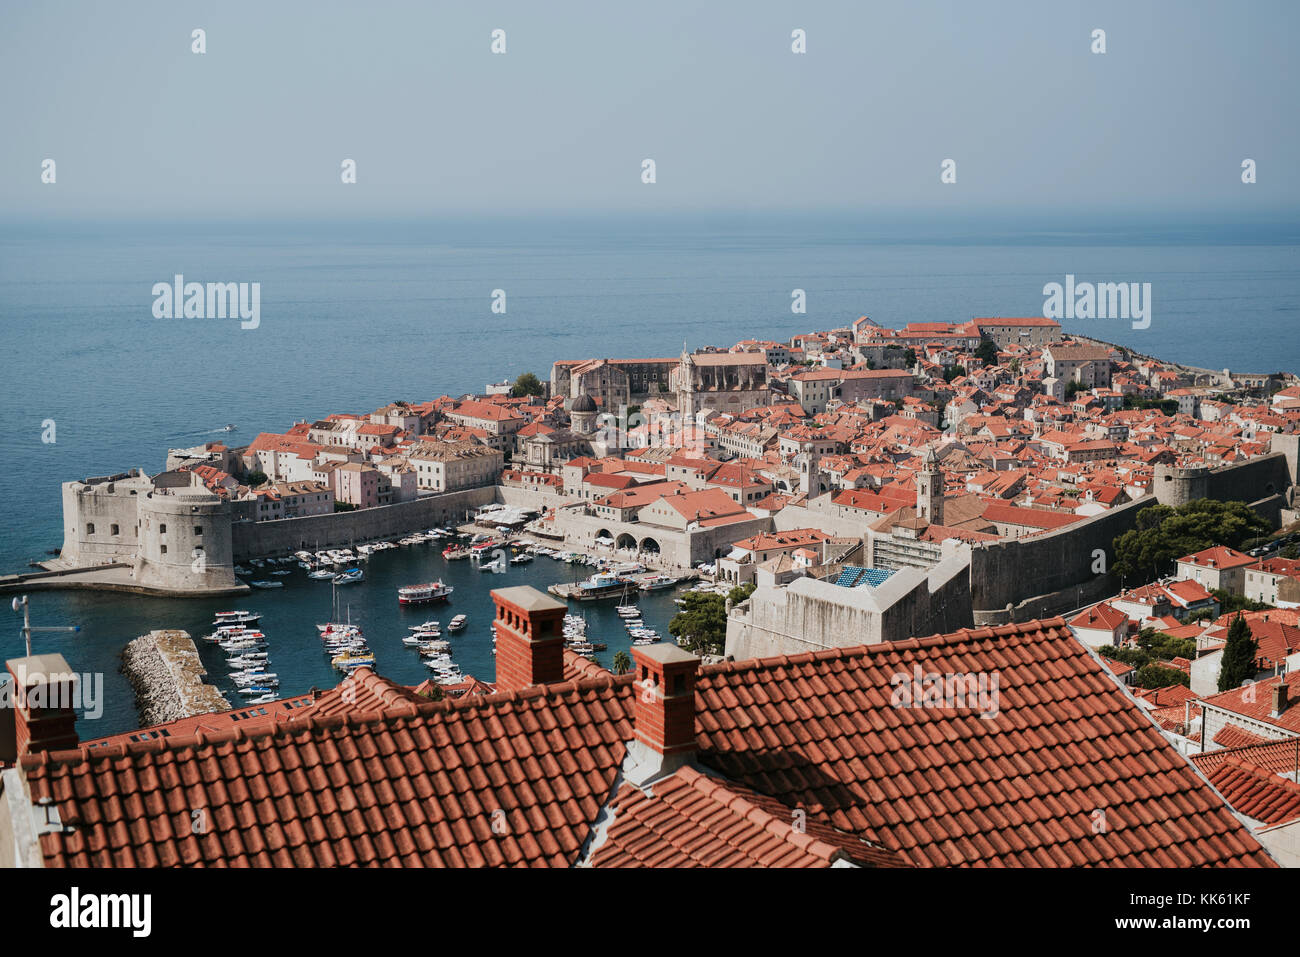 Beautiful old city of Dubrovnik in Croatia - Stock Image